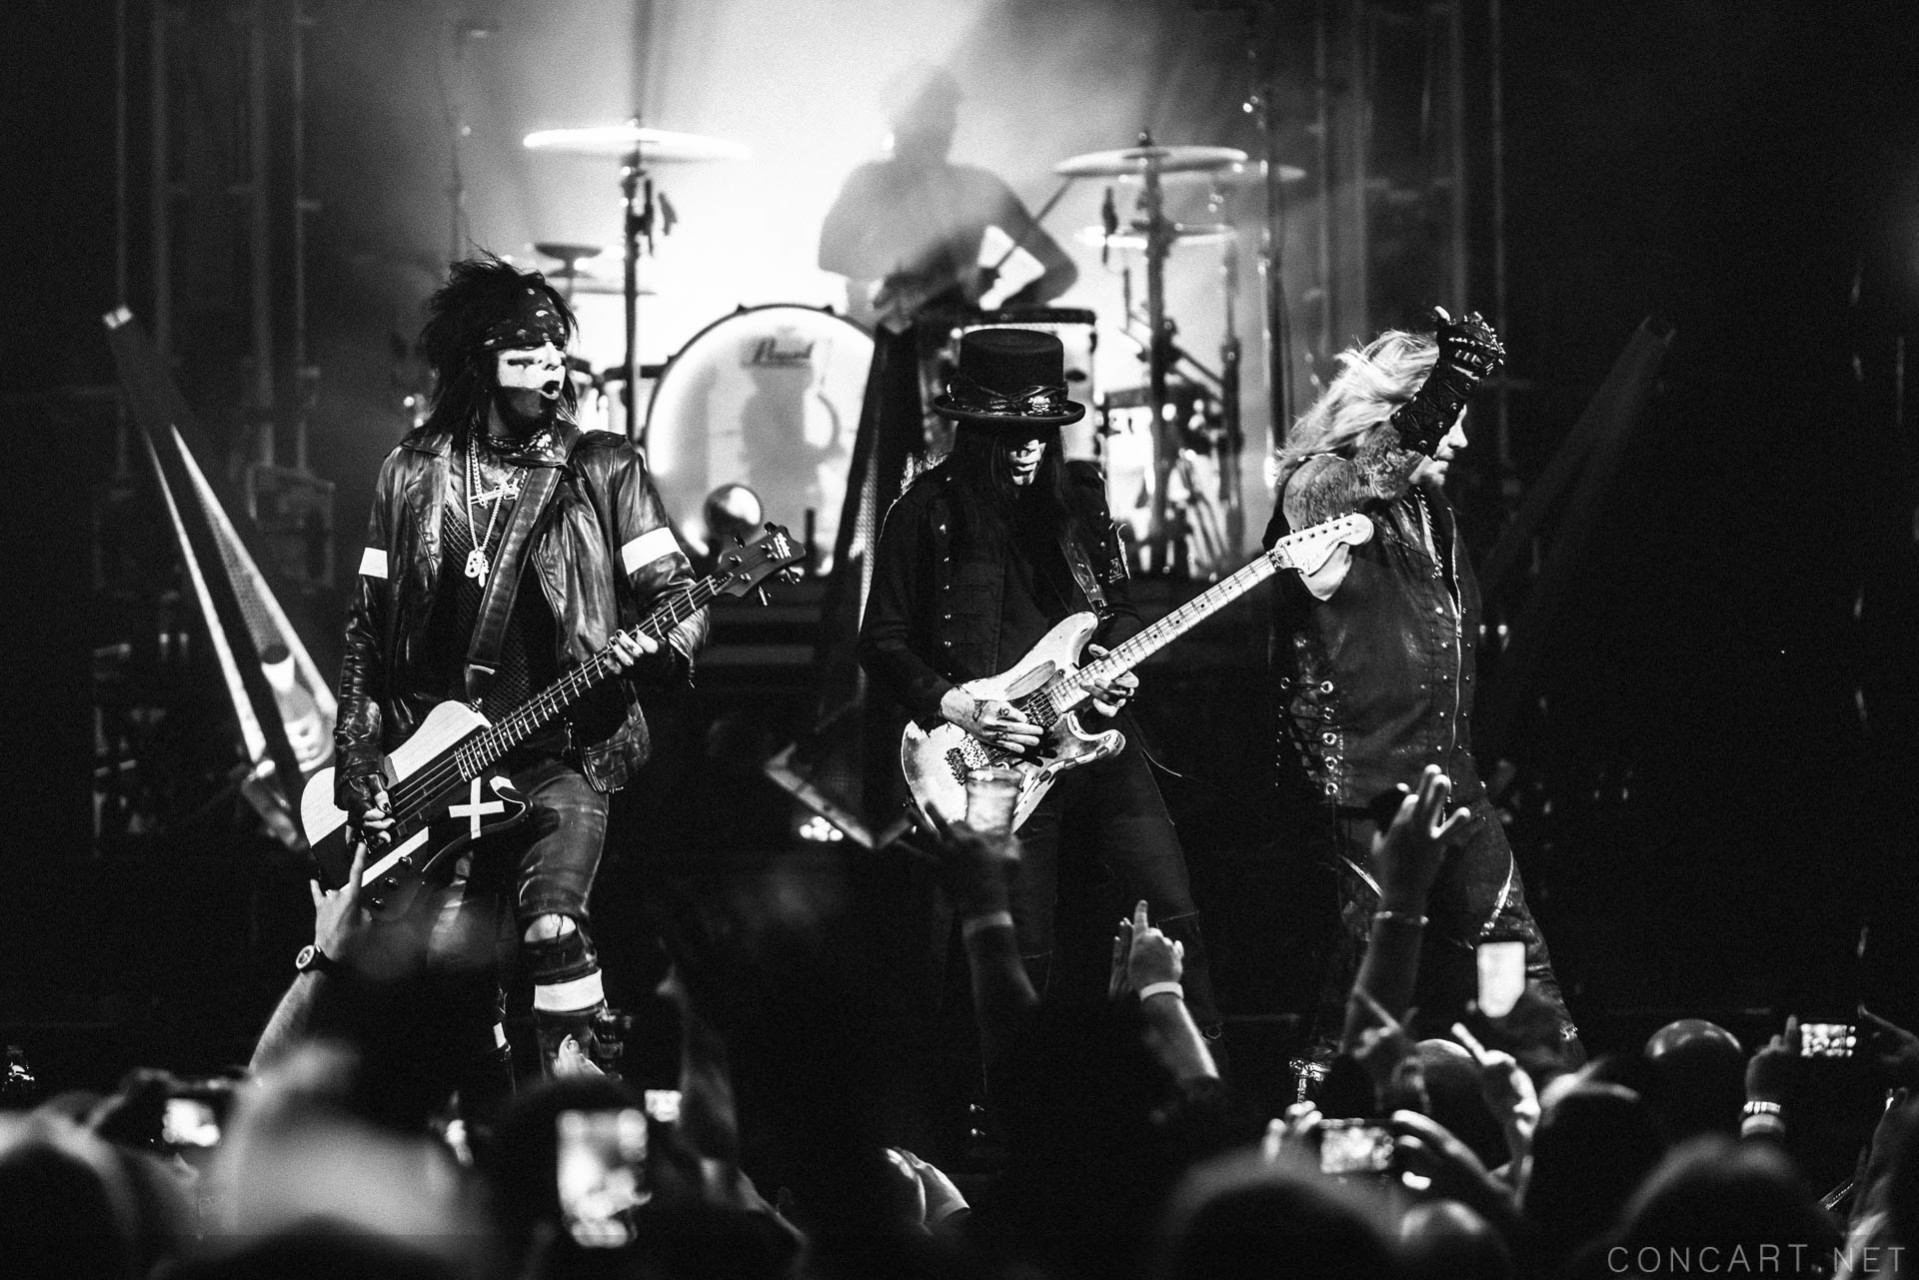 Mötley Crüe photo by Sean Molin 46